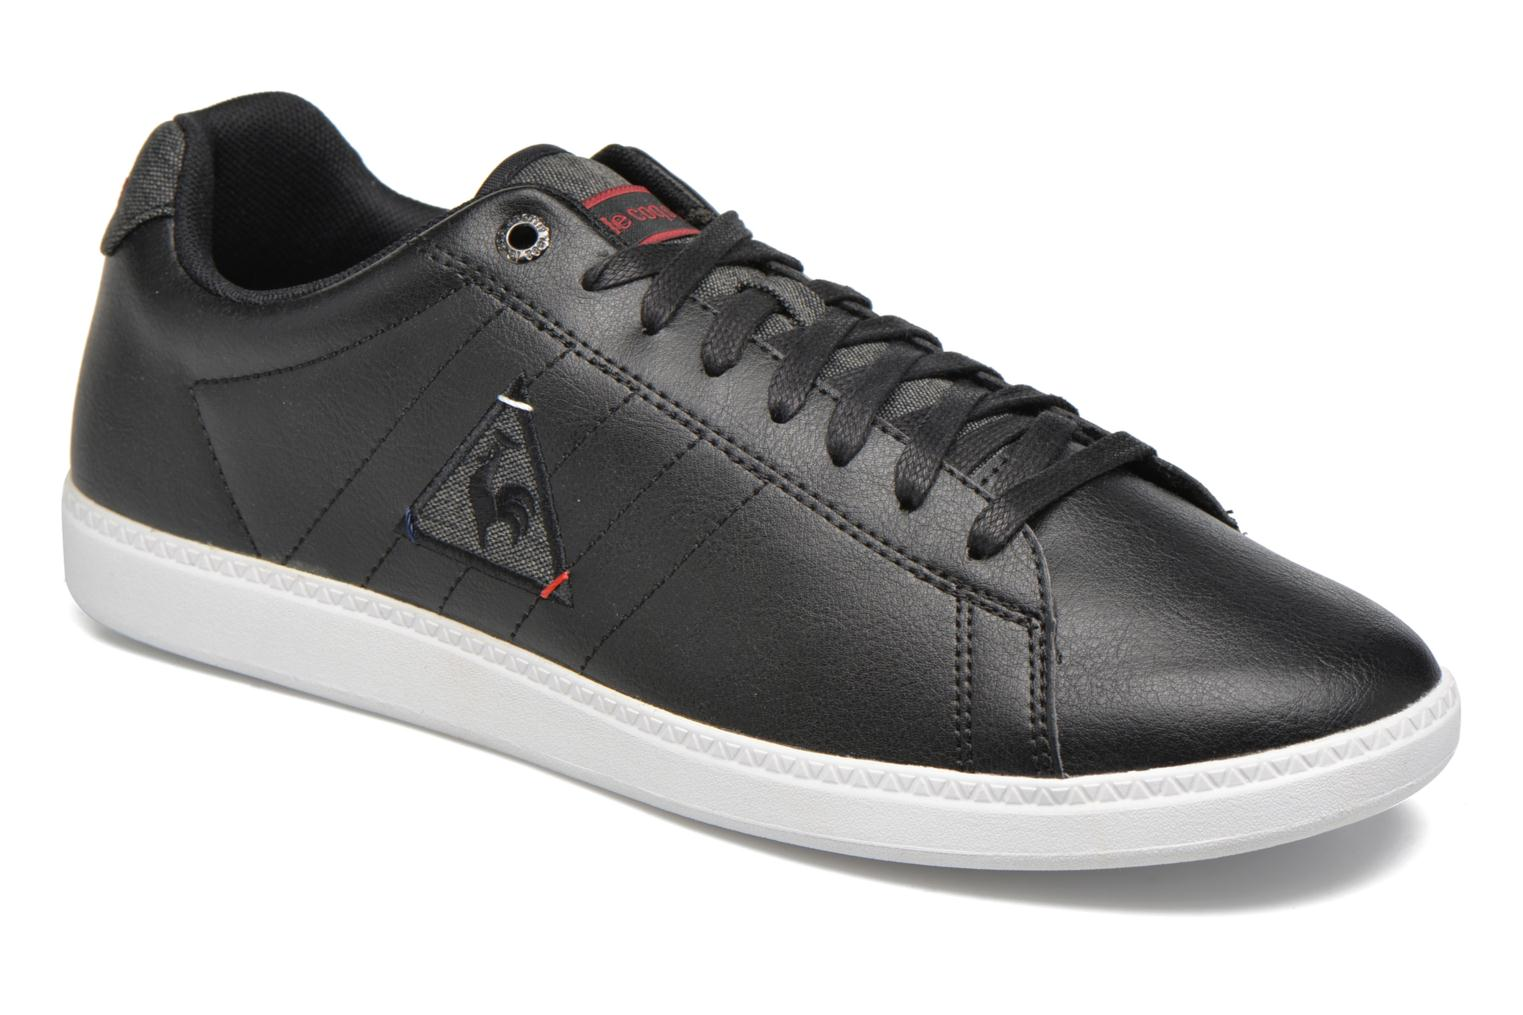 sneakers-courtcraft-s-lea-2-tones-by-le-coq-sportif